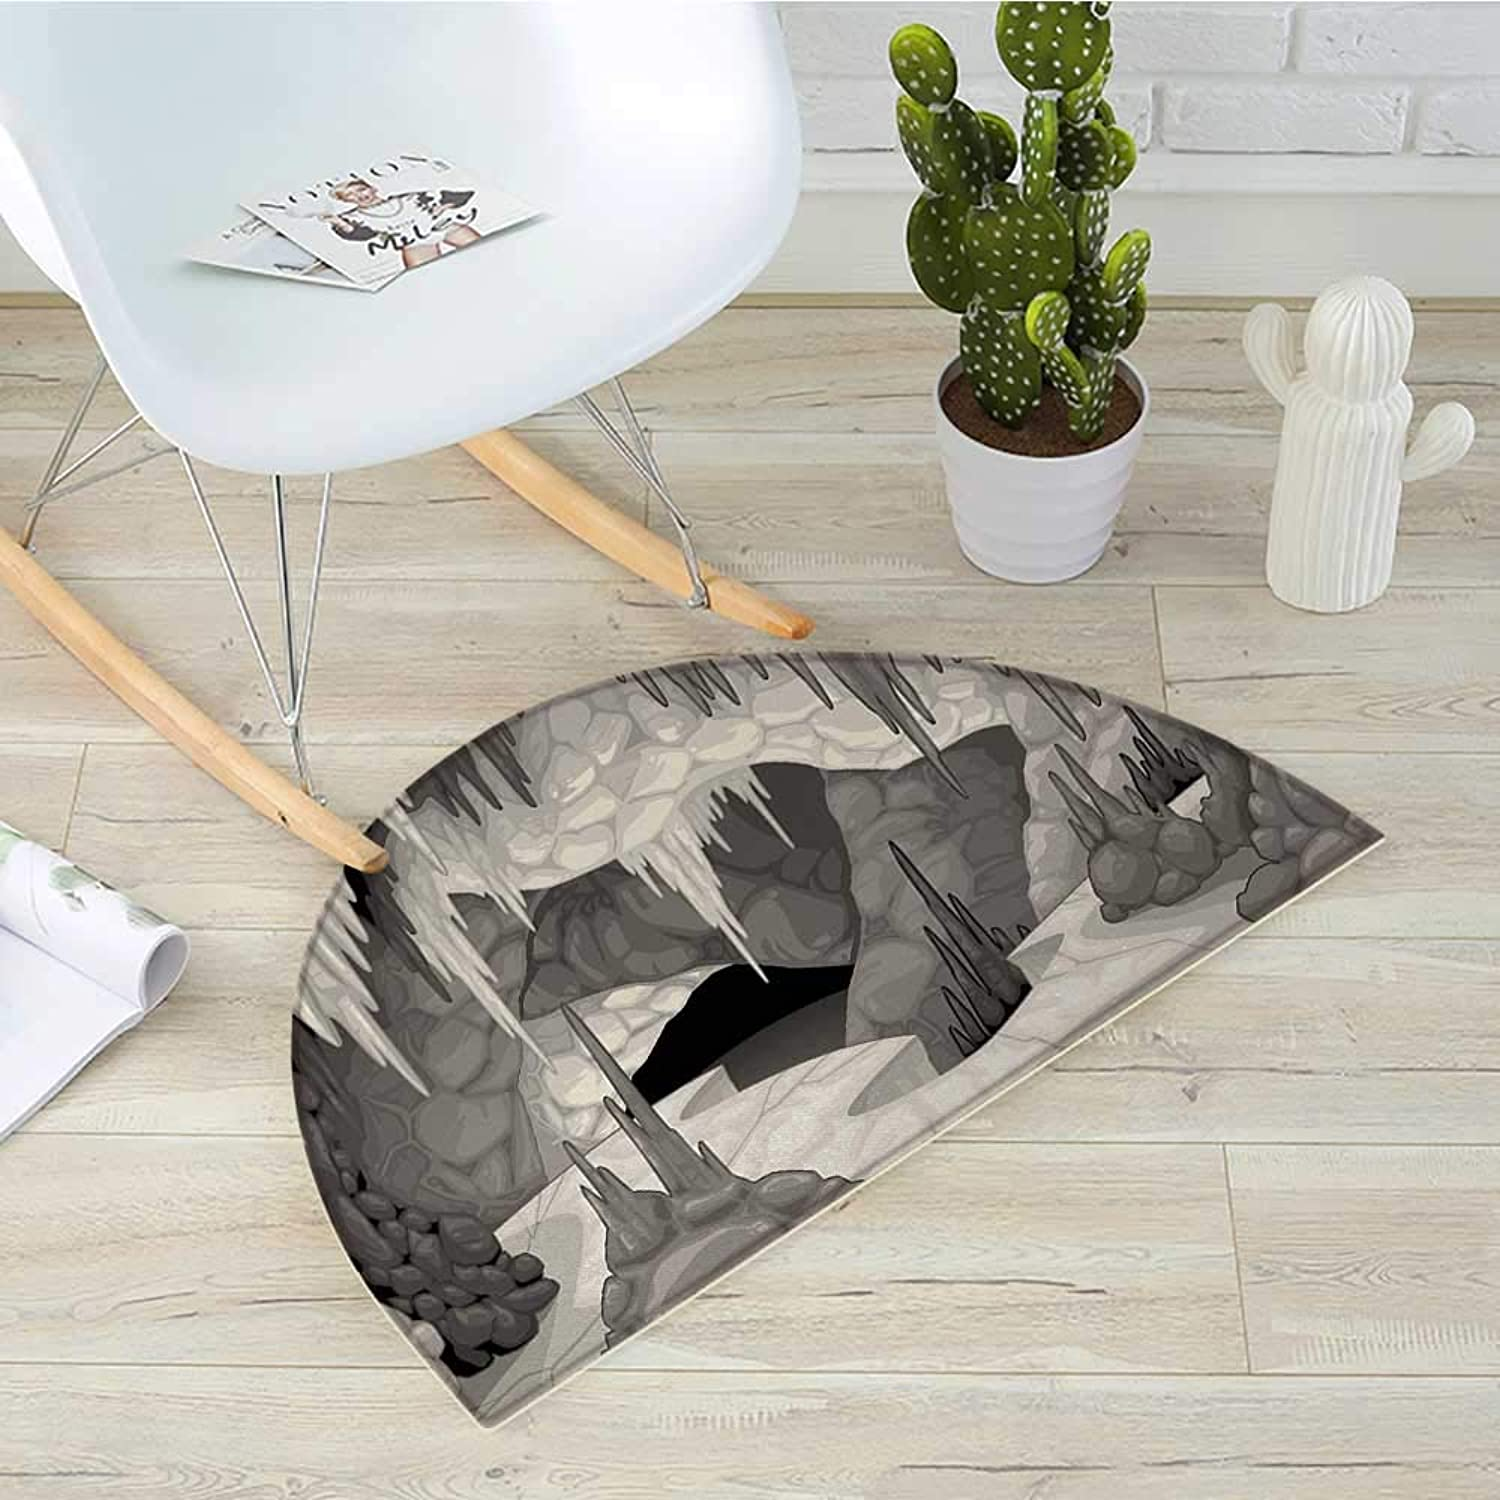 Cave Half Round Door mats Inside The Cavern with Stalagmites Speleology Theme Cartoon Style Gredto in Greyscale Bathroom Mat H 19.7  xD 31.5  Pearl Grey